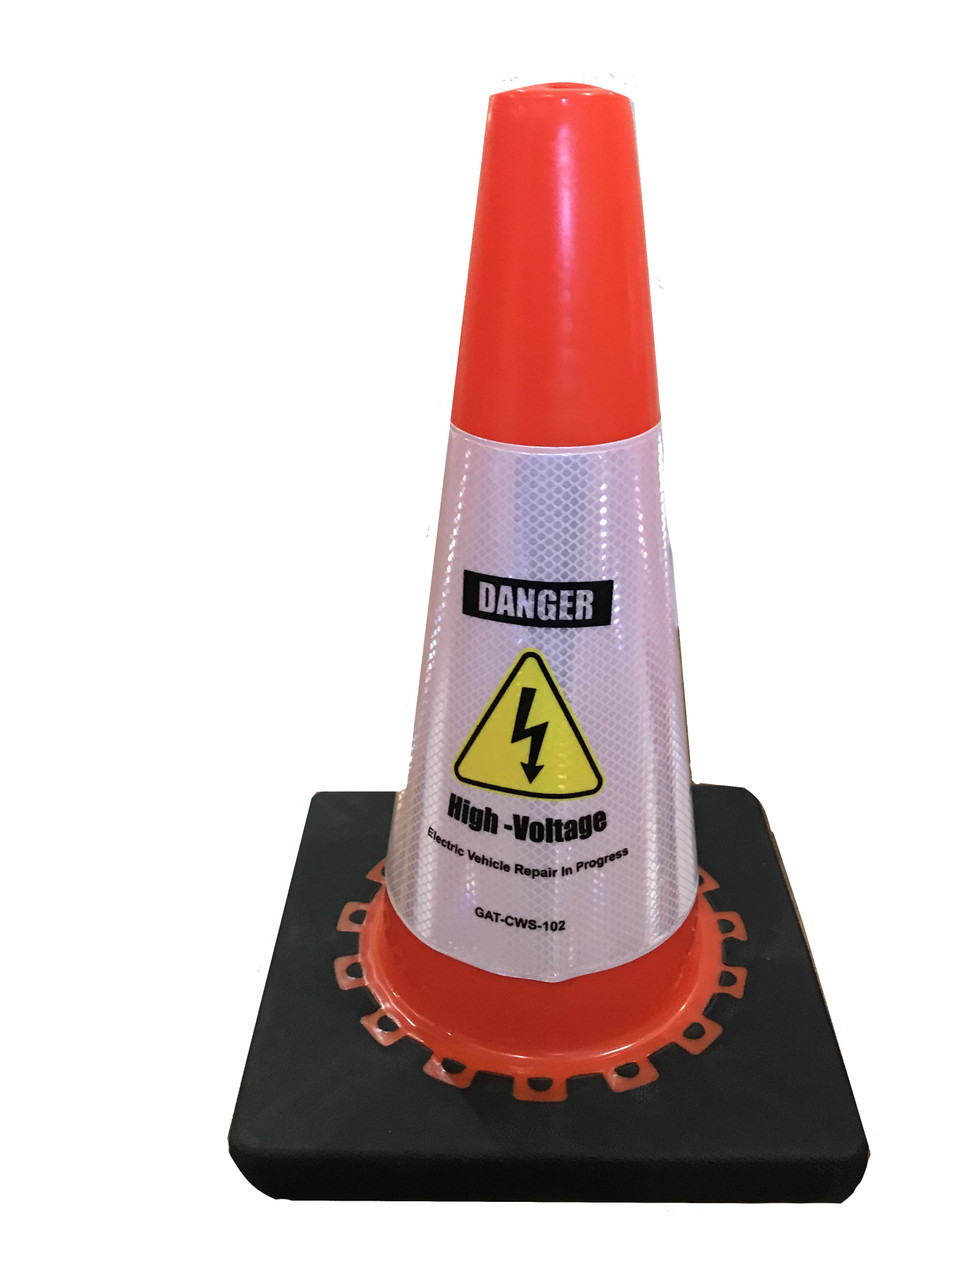 Electric Vehicle High Voltage Danger Sign - Cone Collar-1